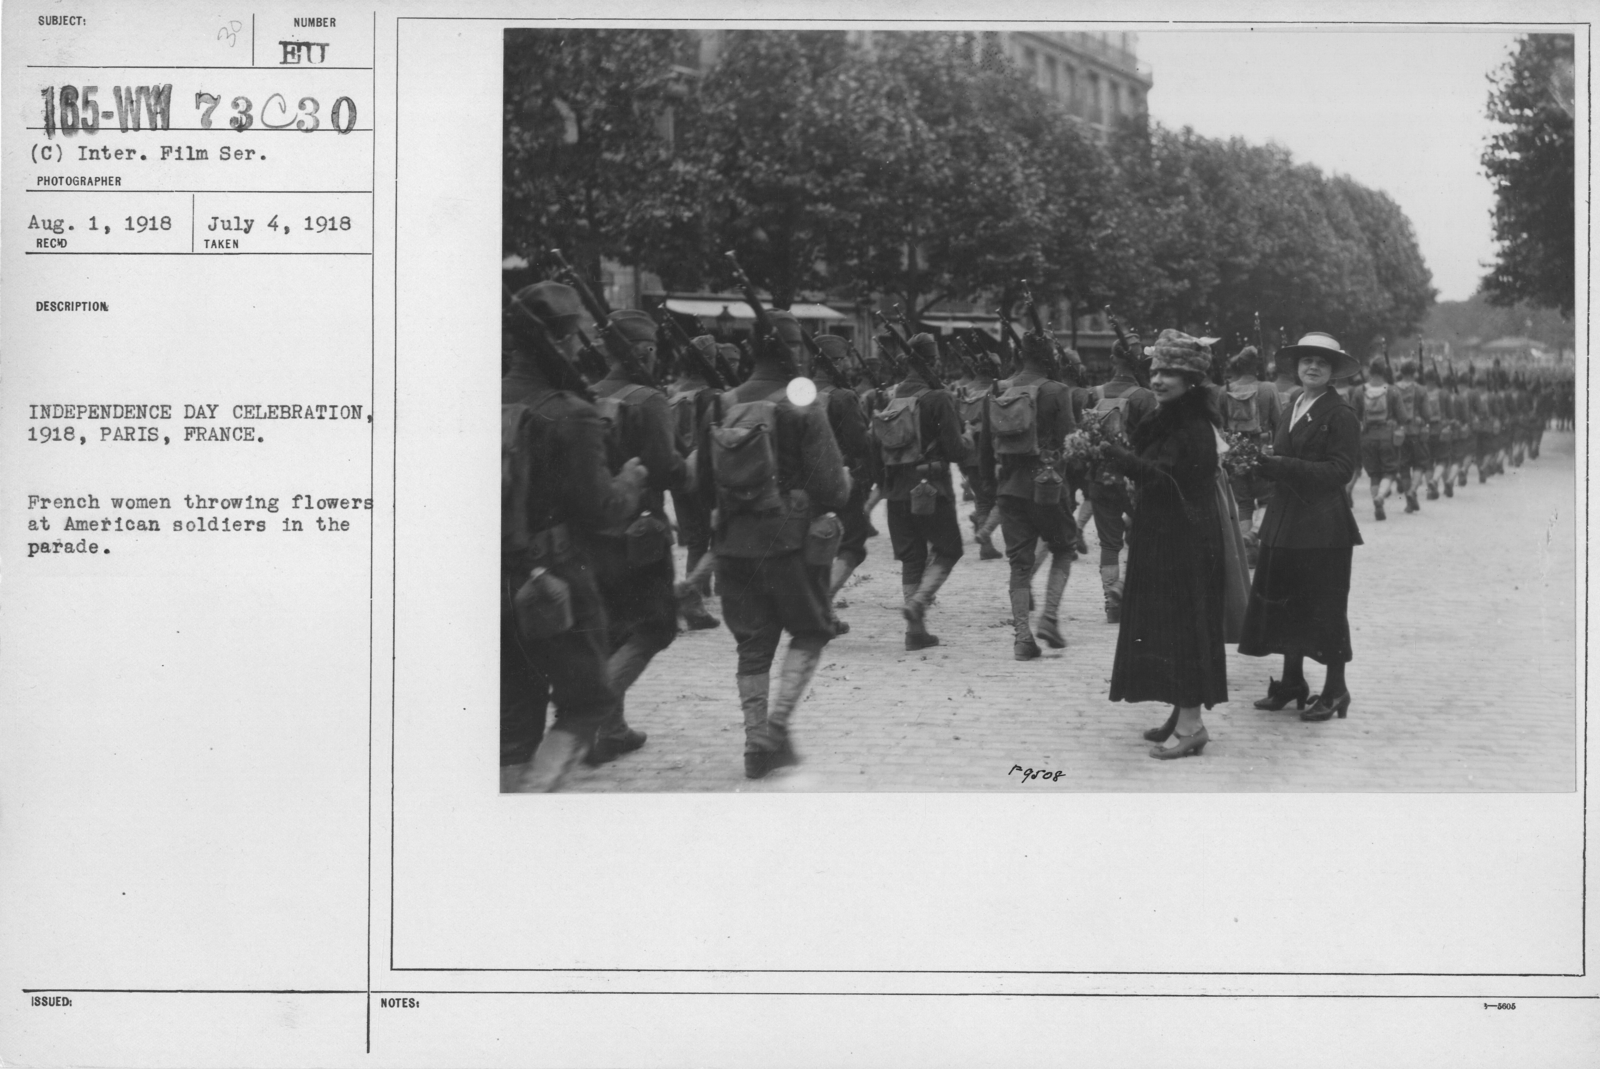 Ceremonies - American Independence Day, 1918 - France - Independence Day Celebration, 1918, Paris, France. French women throwing flowers at American soldiers in the parade